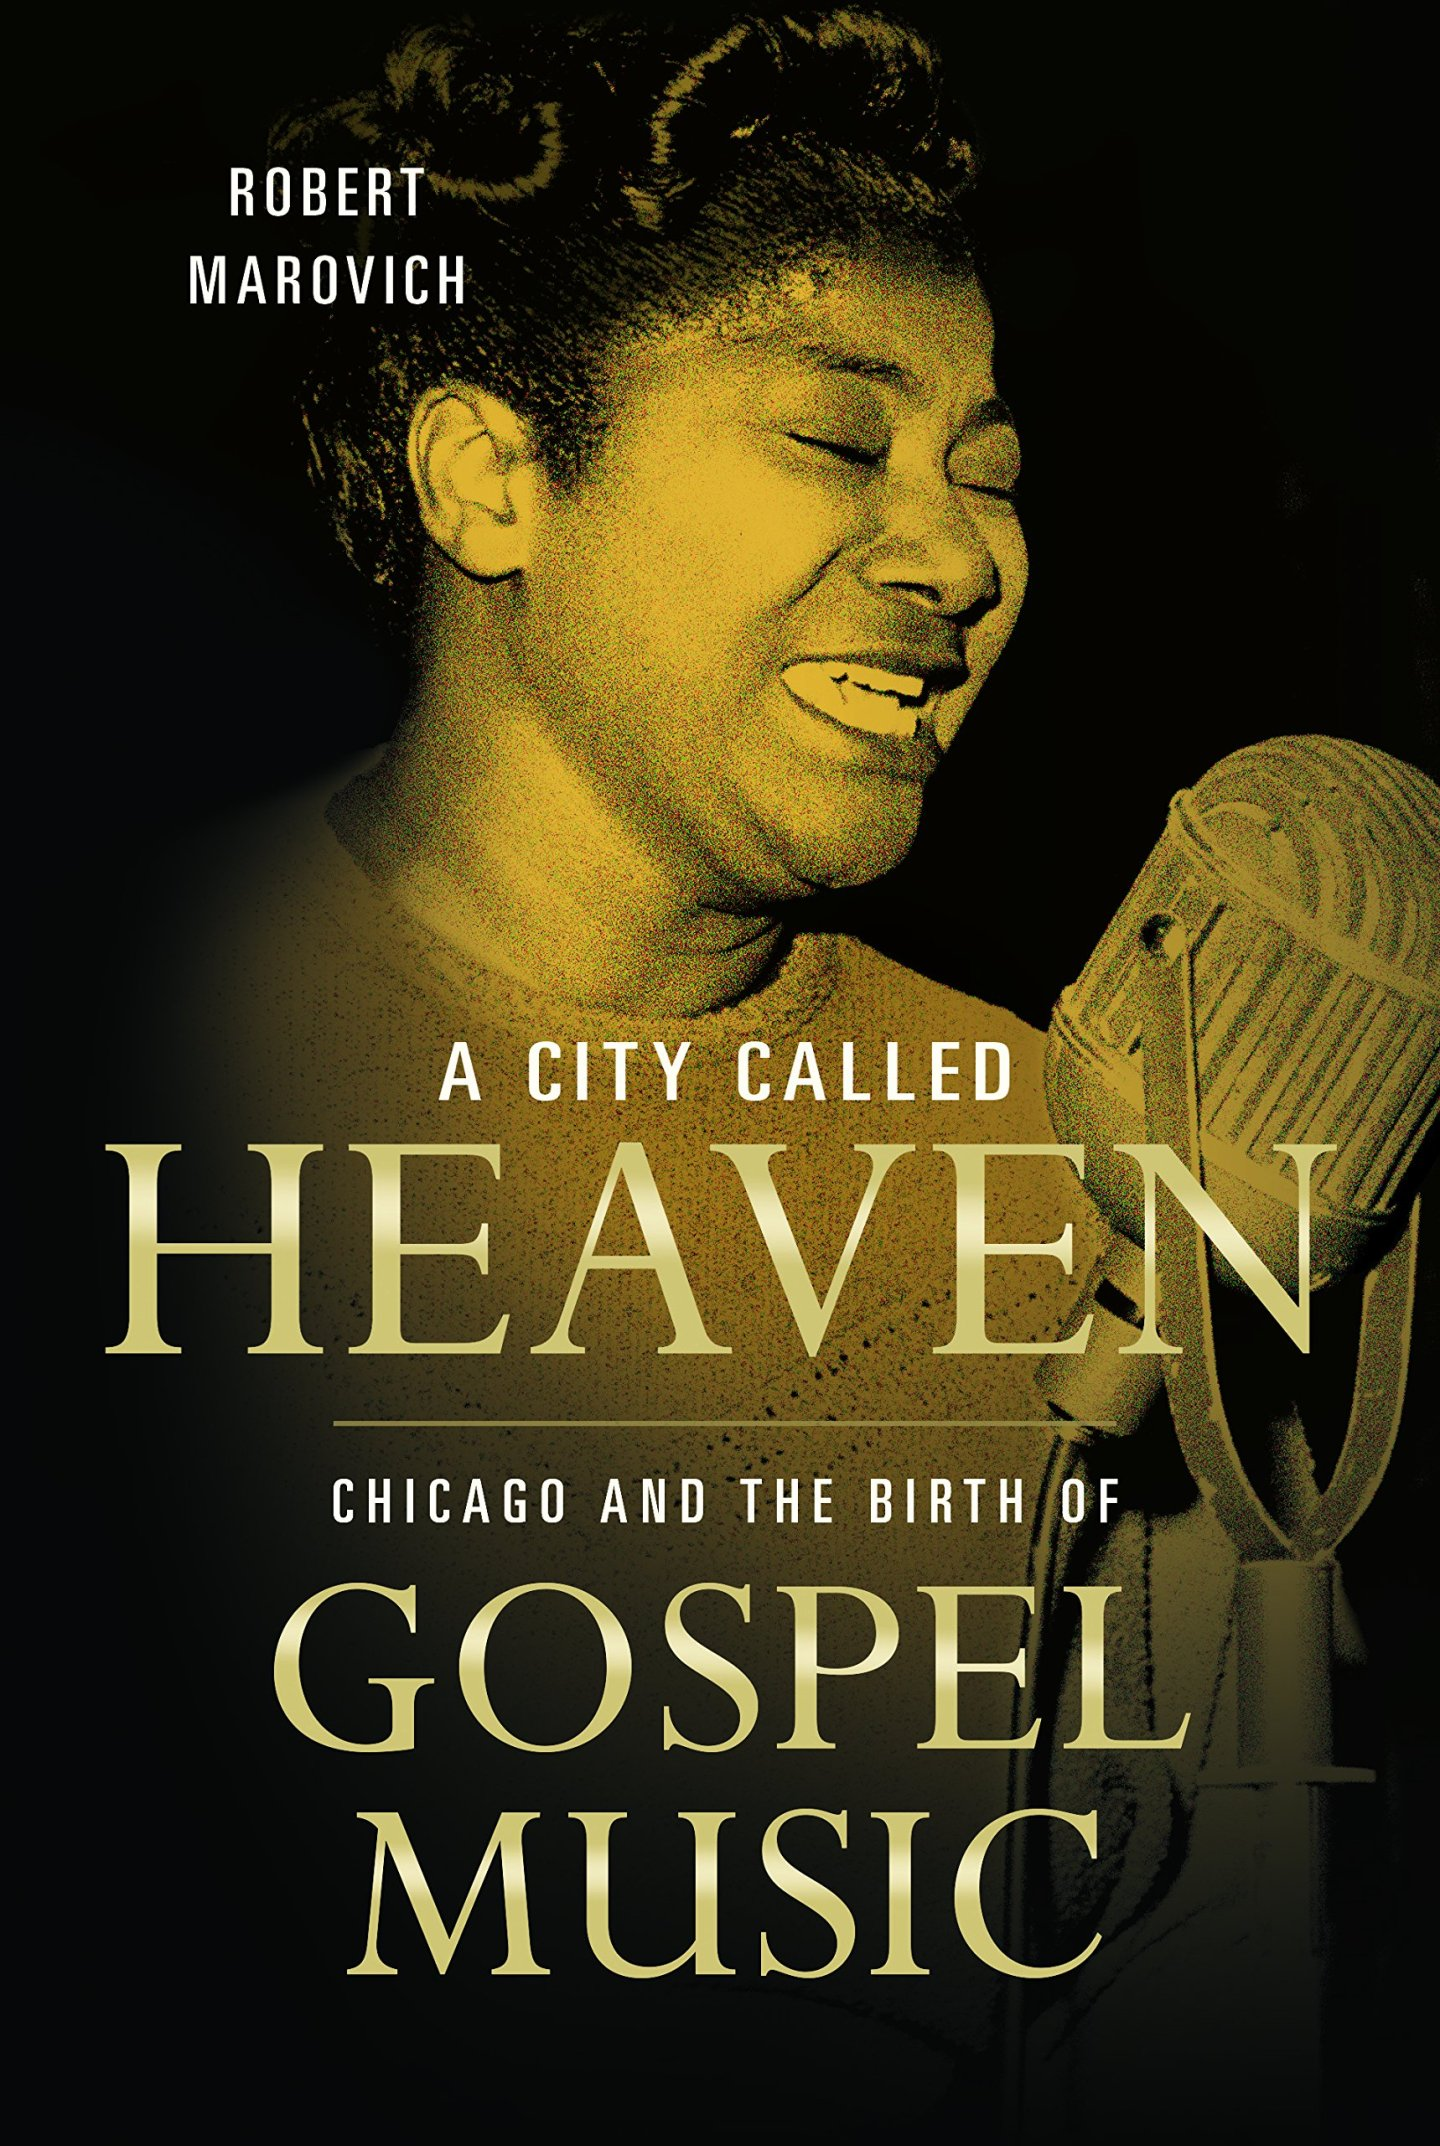 918ZAGbLaQL Black Music Heritage: African American Books Celebrating Gospel Music